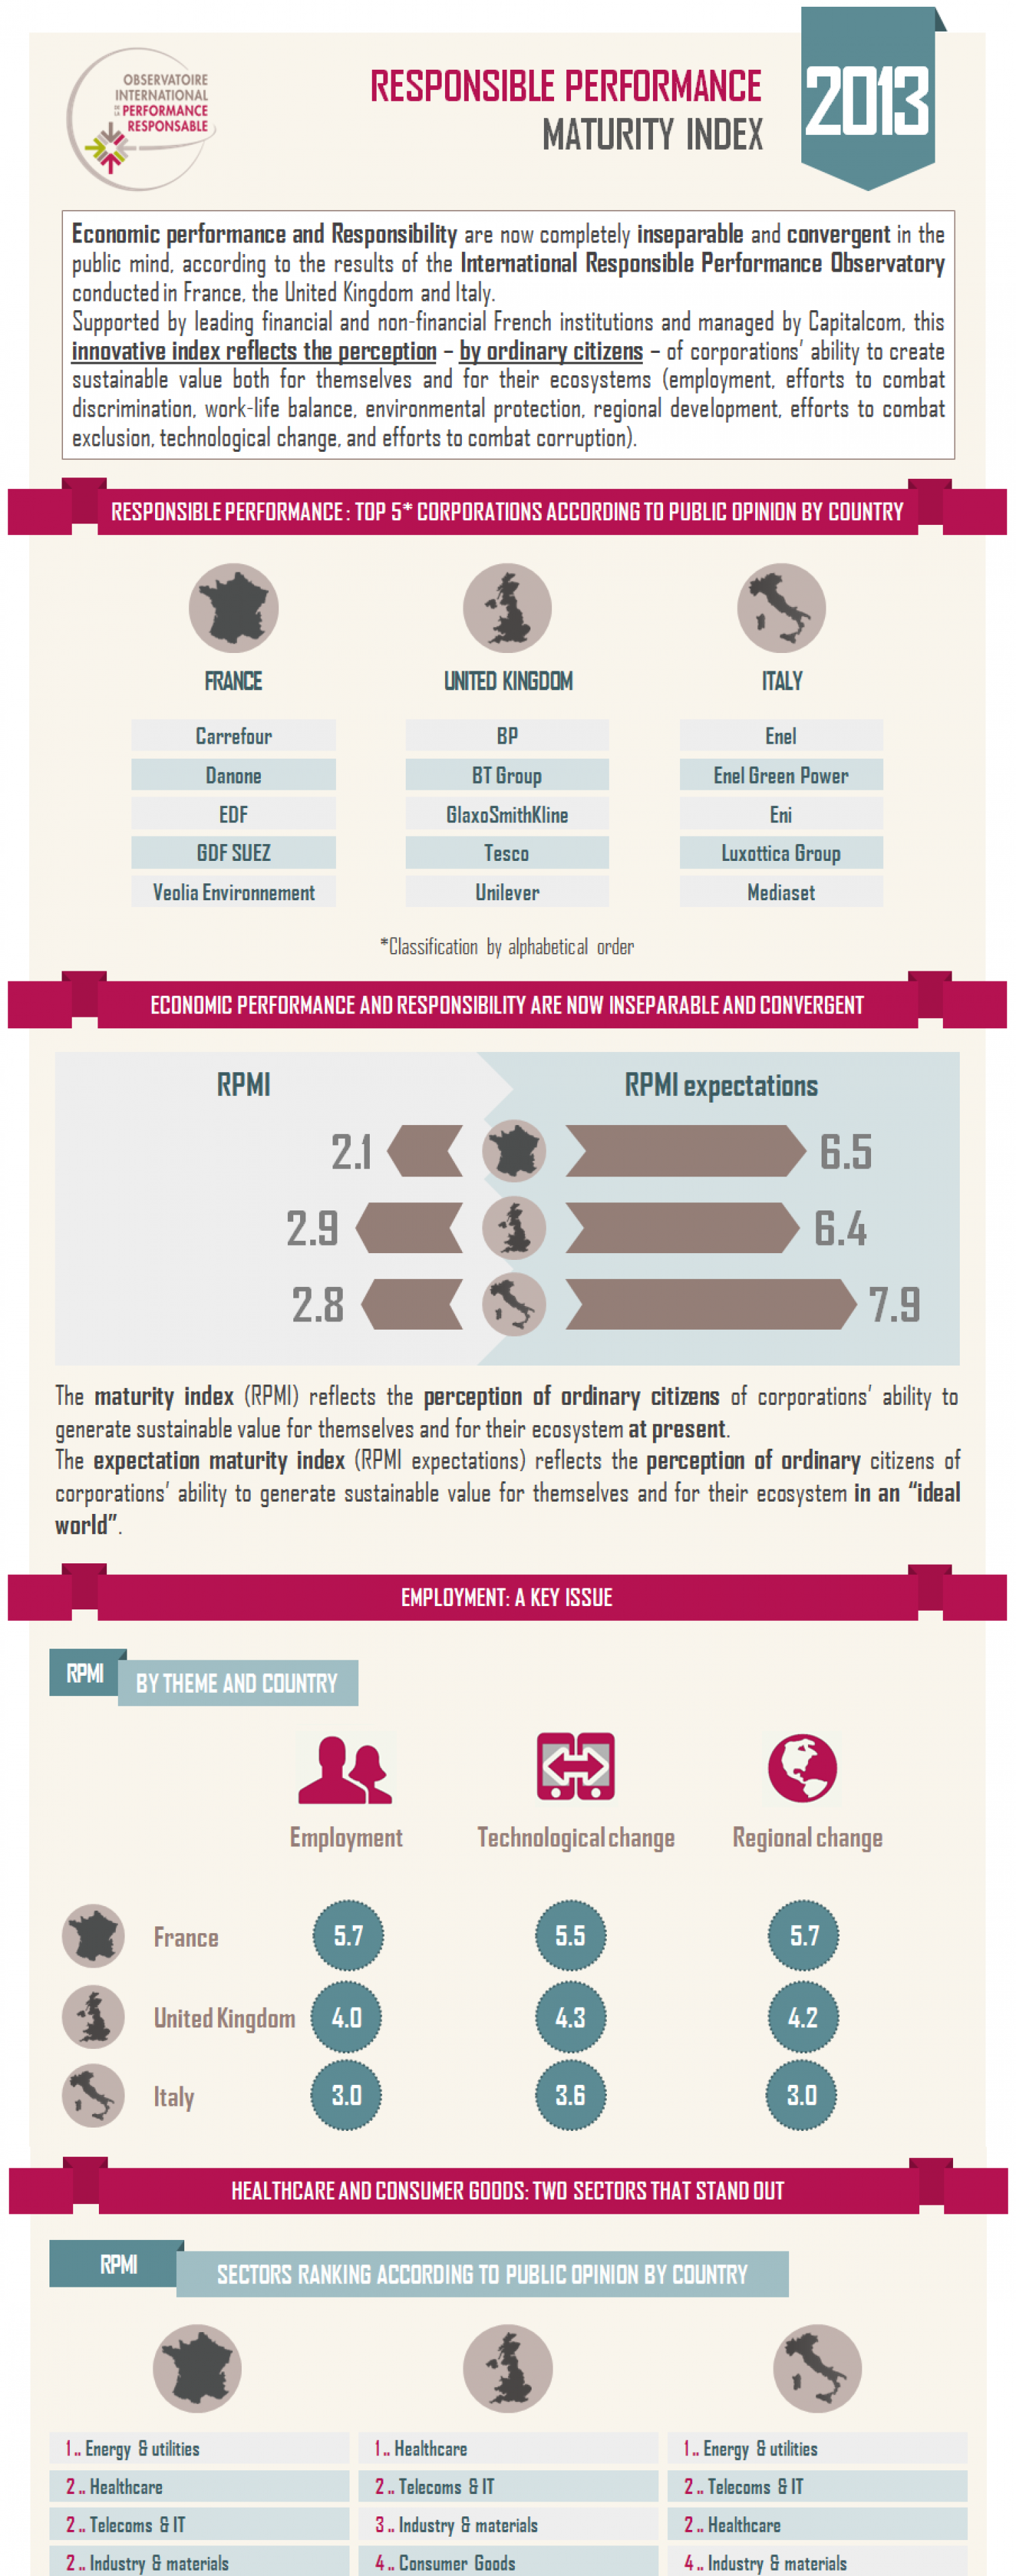 Responsible Performance Maturity Index 2013 Infographic